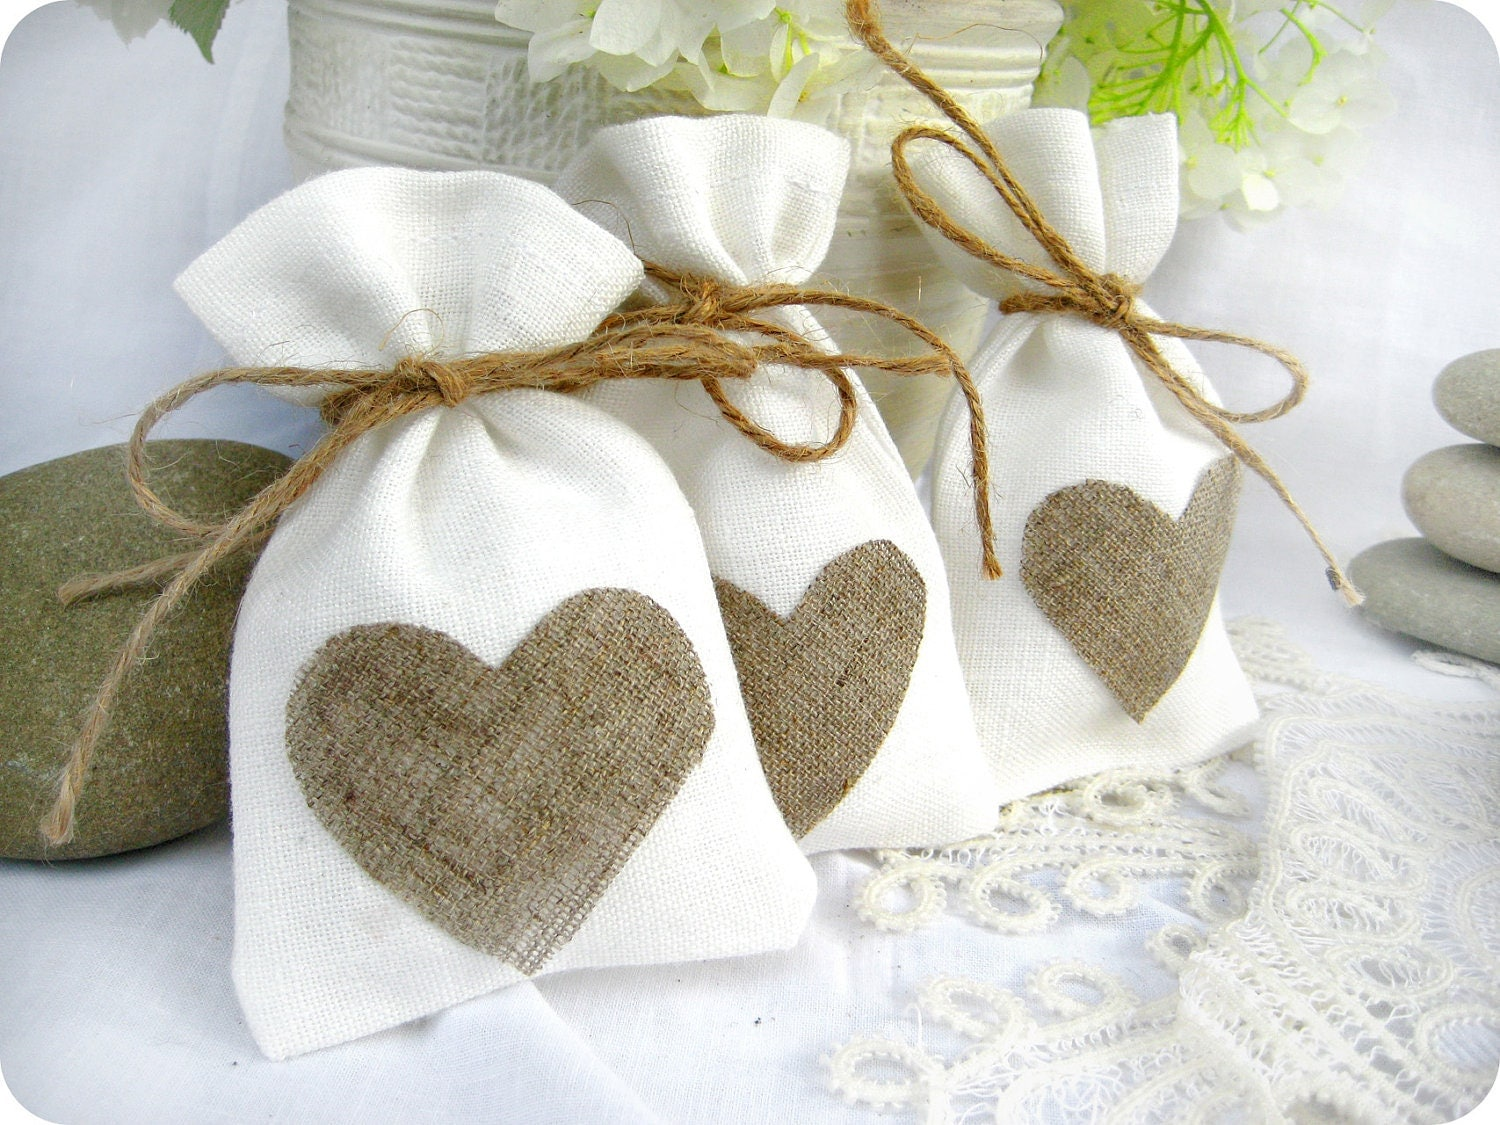 Wedding Gift Bags Etsy : Wedding favor bags Set of 35 White Rustic Linen Wedding